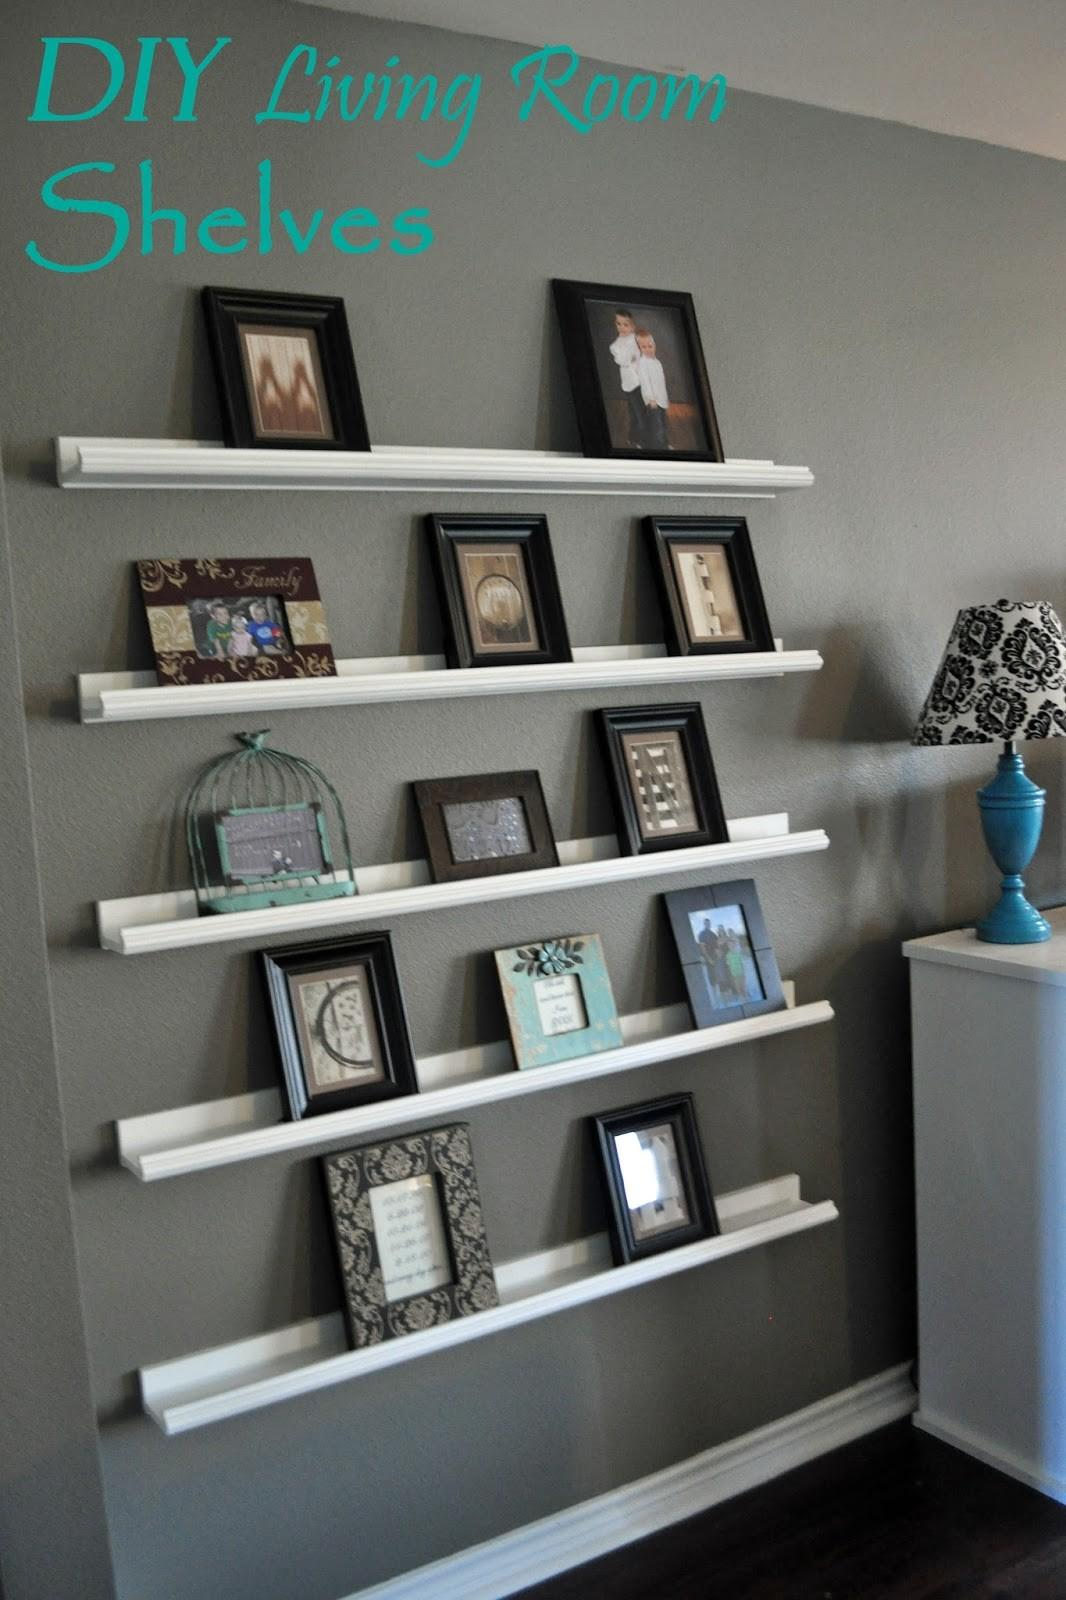 Right Diy Shelving Frames